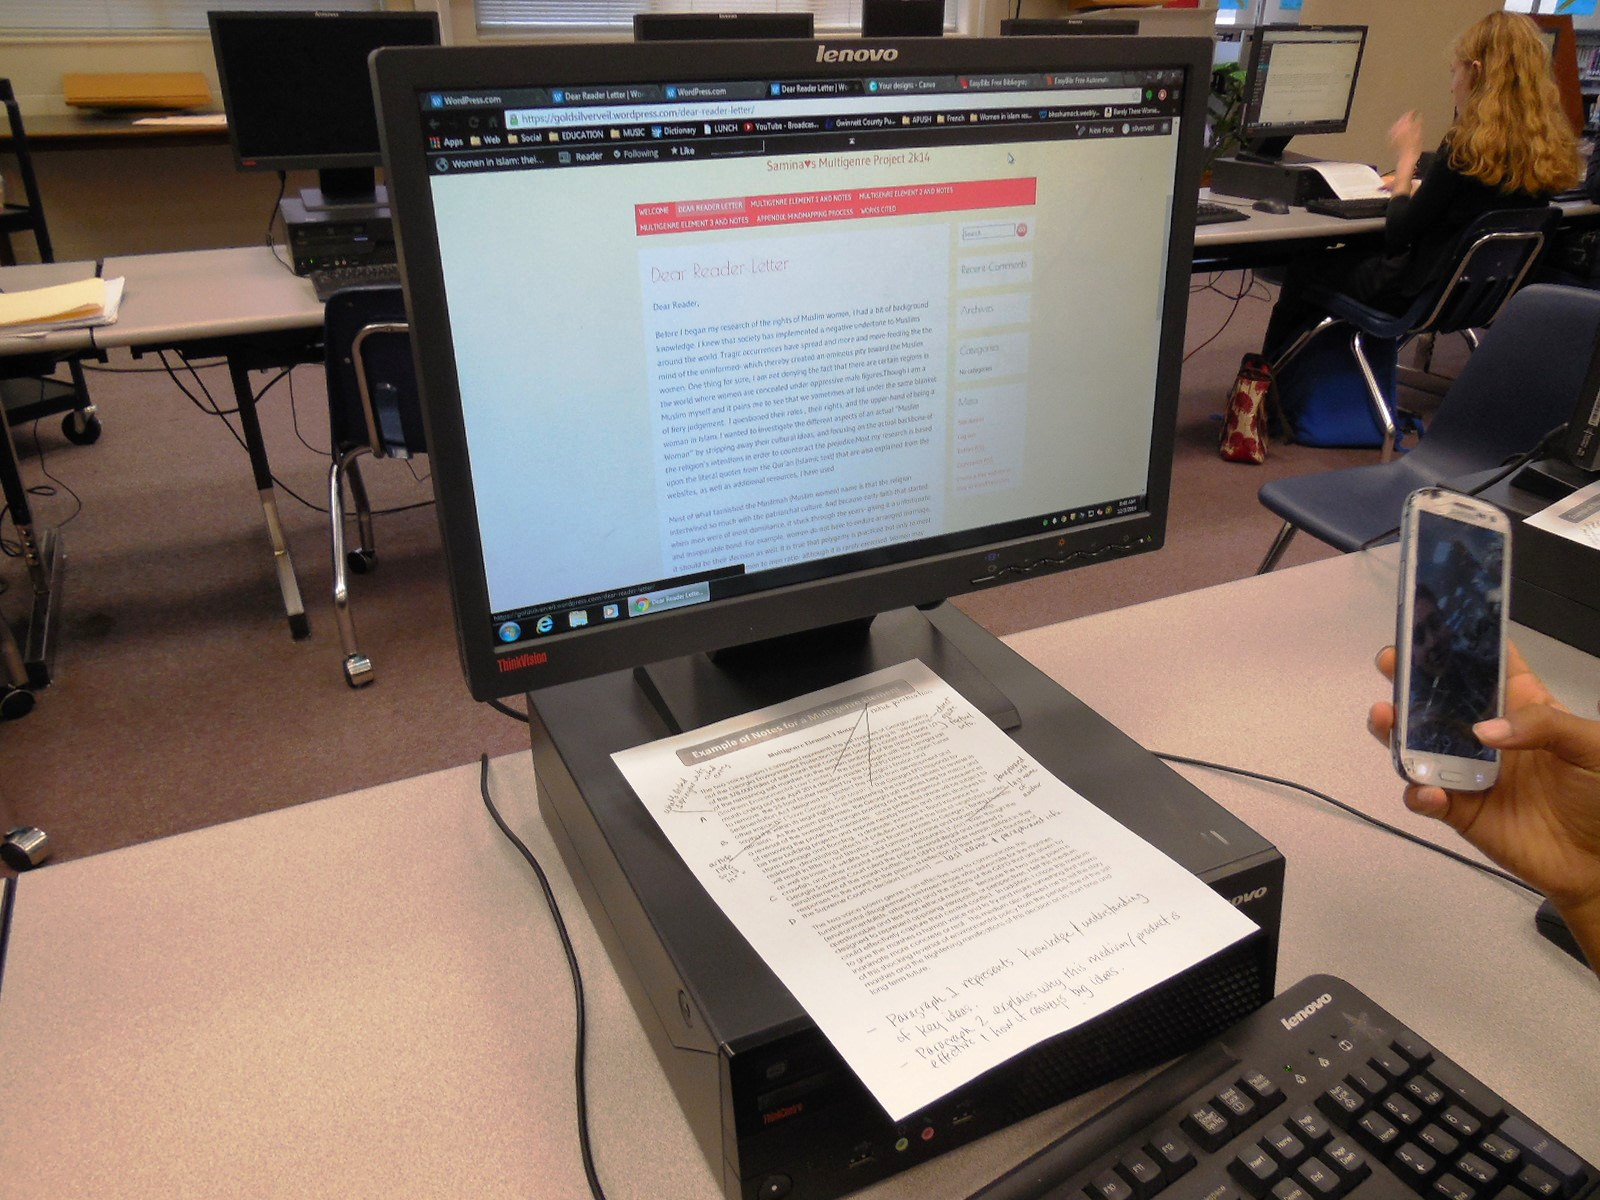 genre multi papers research This handout provides detailed information about how to write research papers including discussing research papers as a genre, choosing topics, and finding sources.